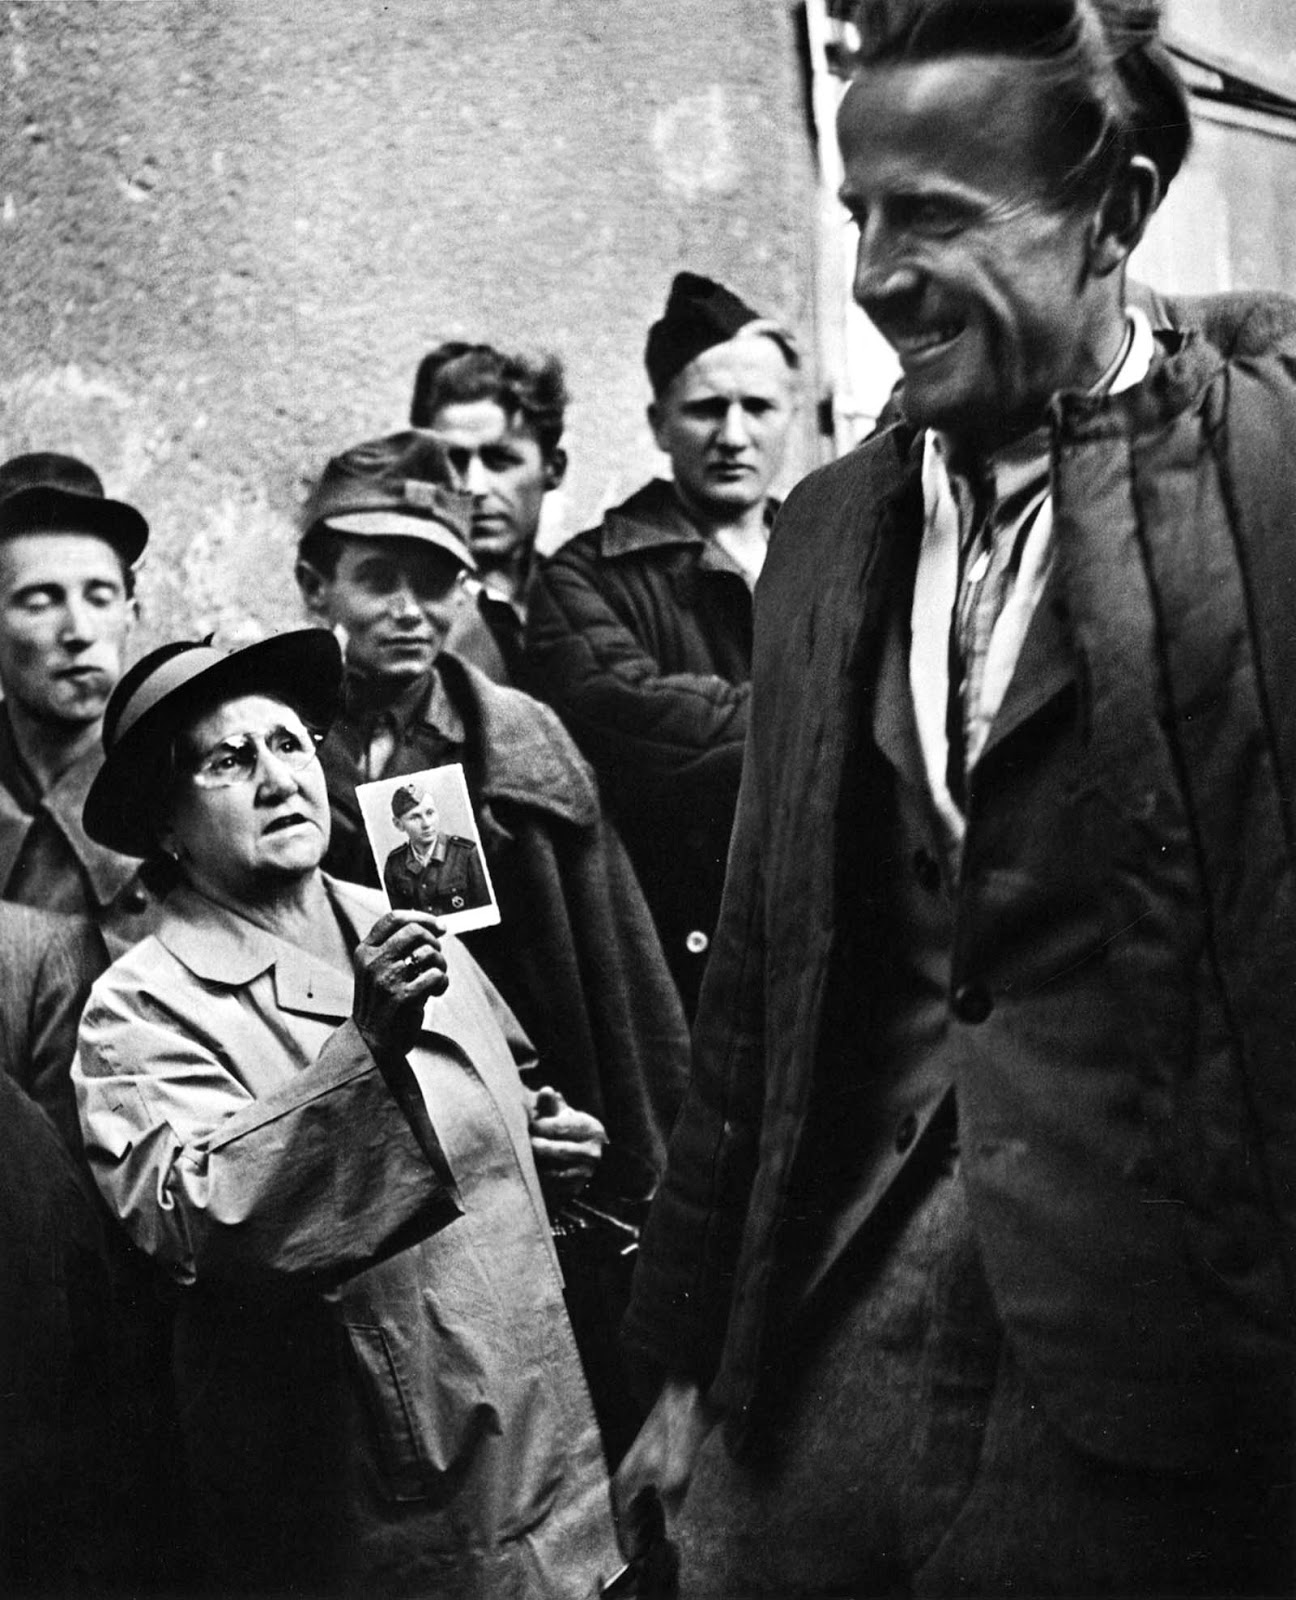 A smiling prisoner of war returning home to Vienna passes a woman holding a photograph up in a mixture of hope and despair.